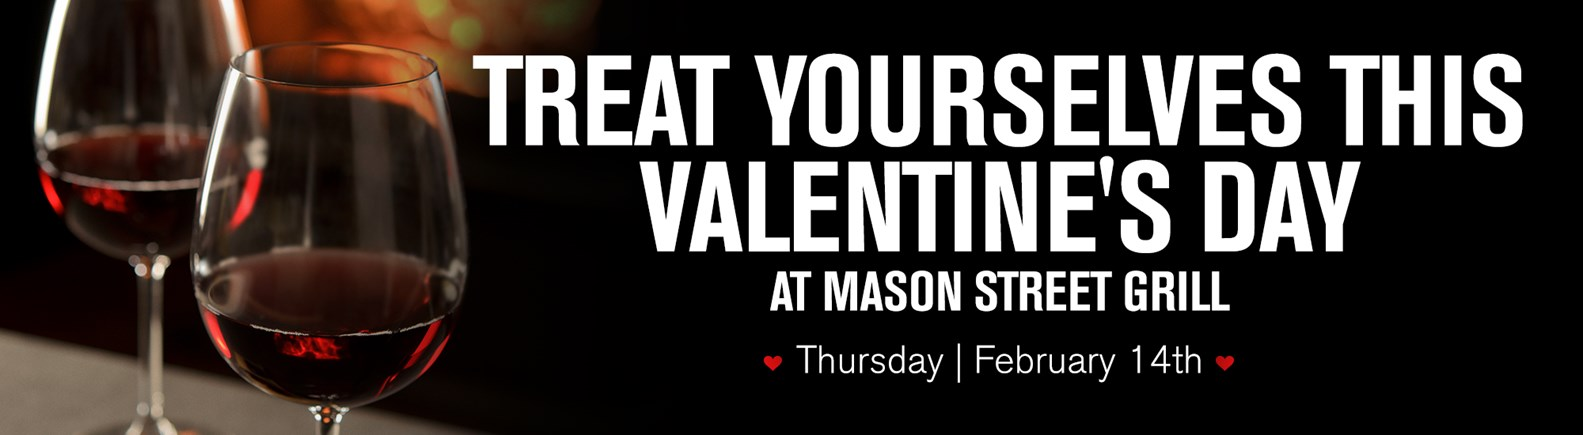 https://assets.marcusapps.com/files/outlets//mason-street/events/MSG-Valentines2019-wide.jpg?width=1583&height=400&mode=crop